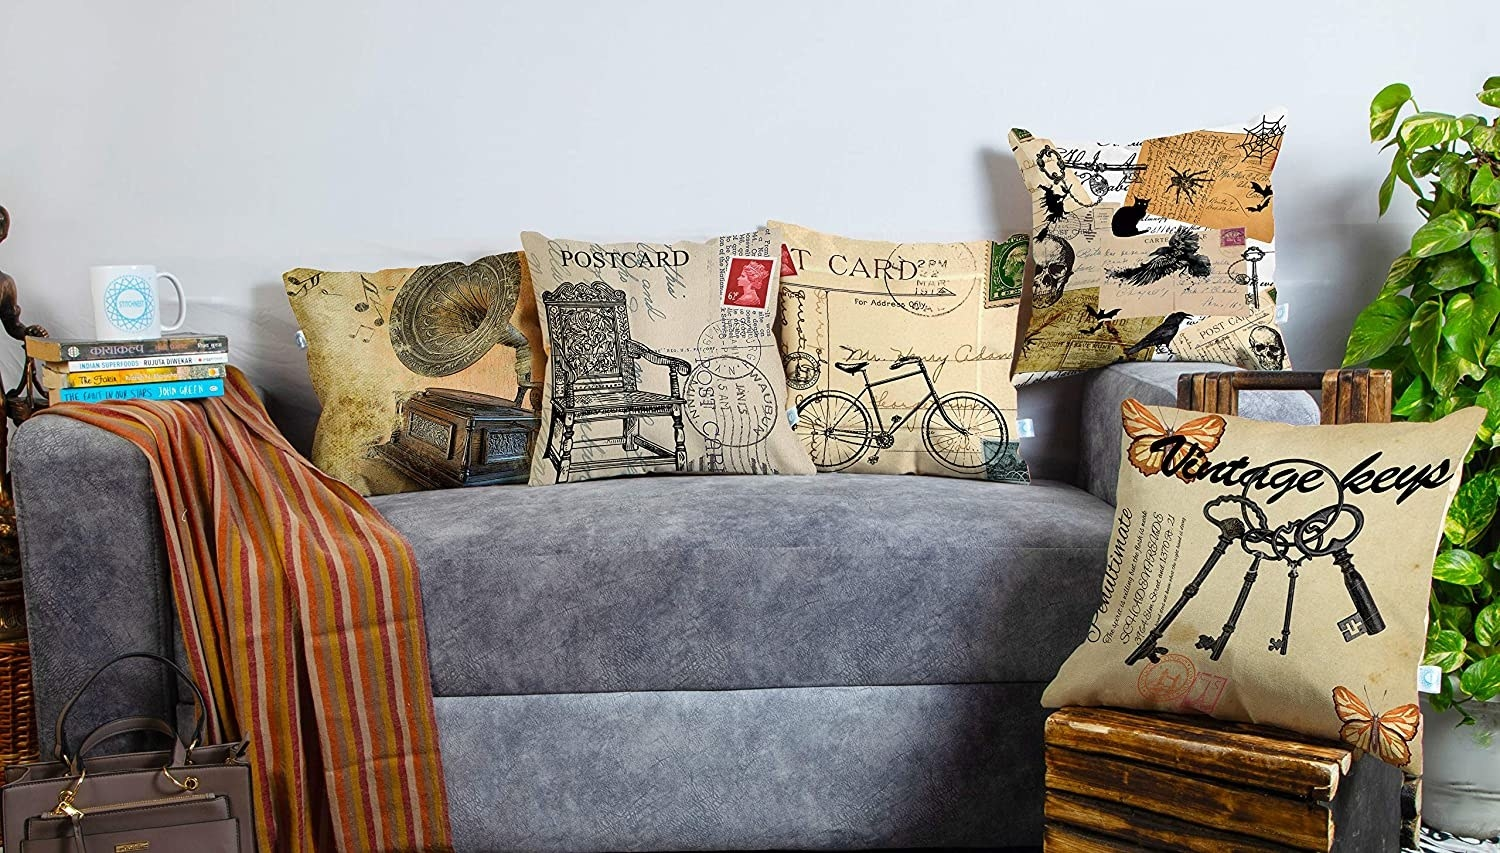 5 cushions with vintage-prints kept on a grey sofa.